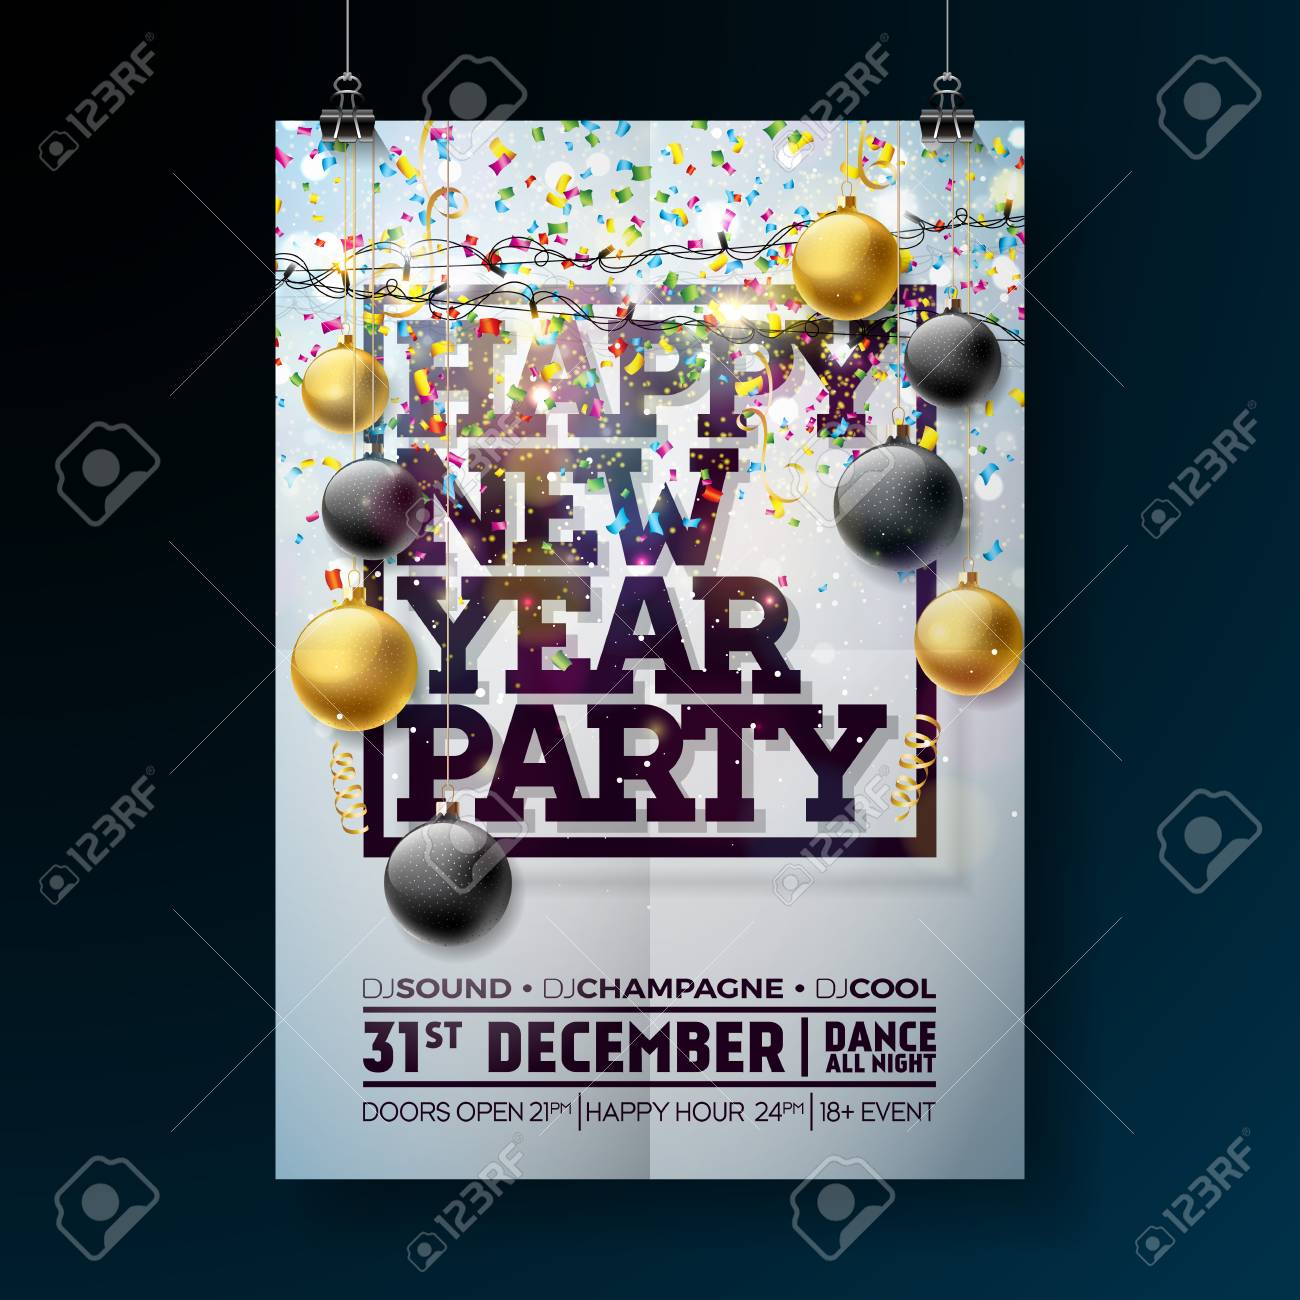 new year party celebration poster template illustration with typography design glass ball and falling confetti